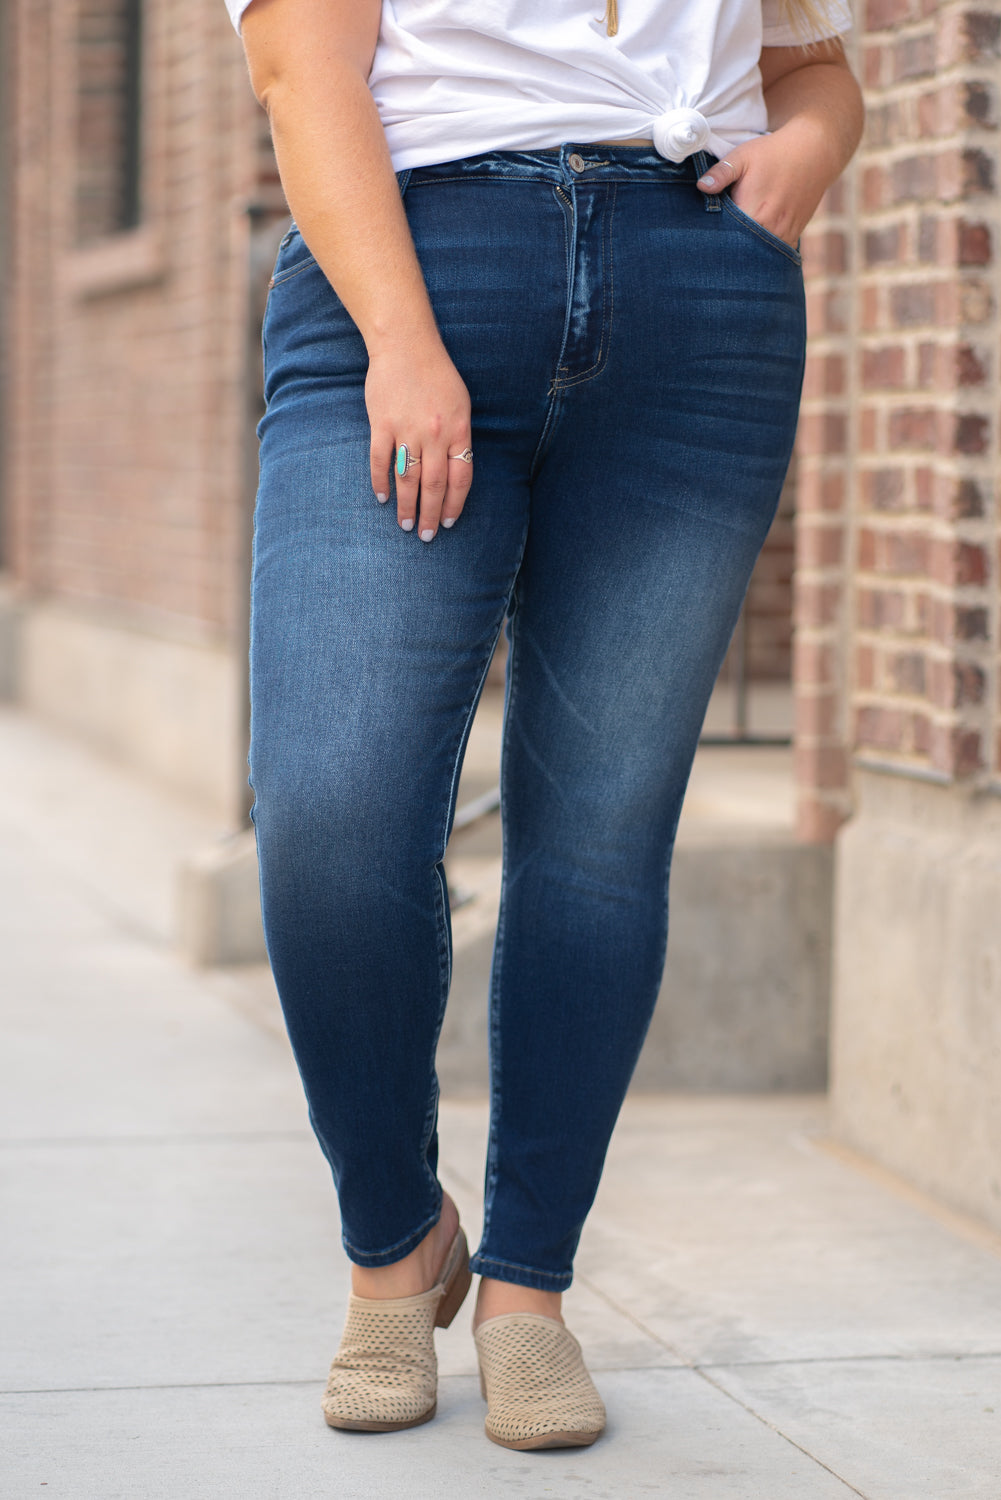 "KanCan Jeans  Collection: Core Style Color: Dark Wash Cut: Skinny, 28"" Inseam Rise: High-Rise, 10"" Front Rise 4.9% COTTON 3.8% POLYESTER 1.3% SPANDEX Fly: Zipper  Style #: KC7342D-PL Contact us for any additional measurements or sizing.   Victoria is wearing a 2XL in these jeans."